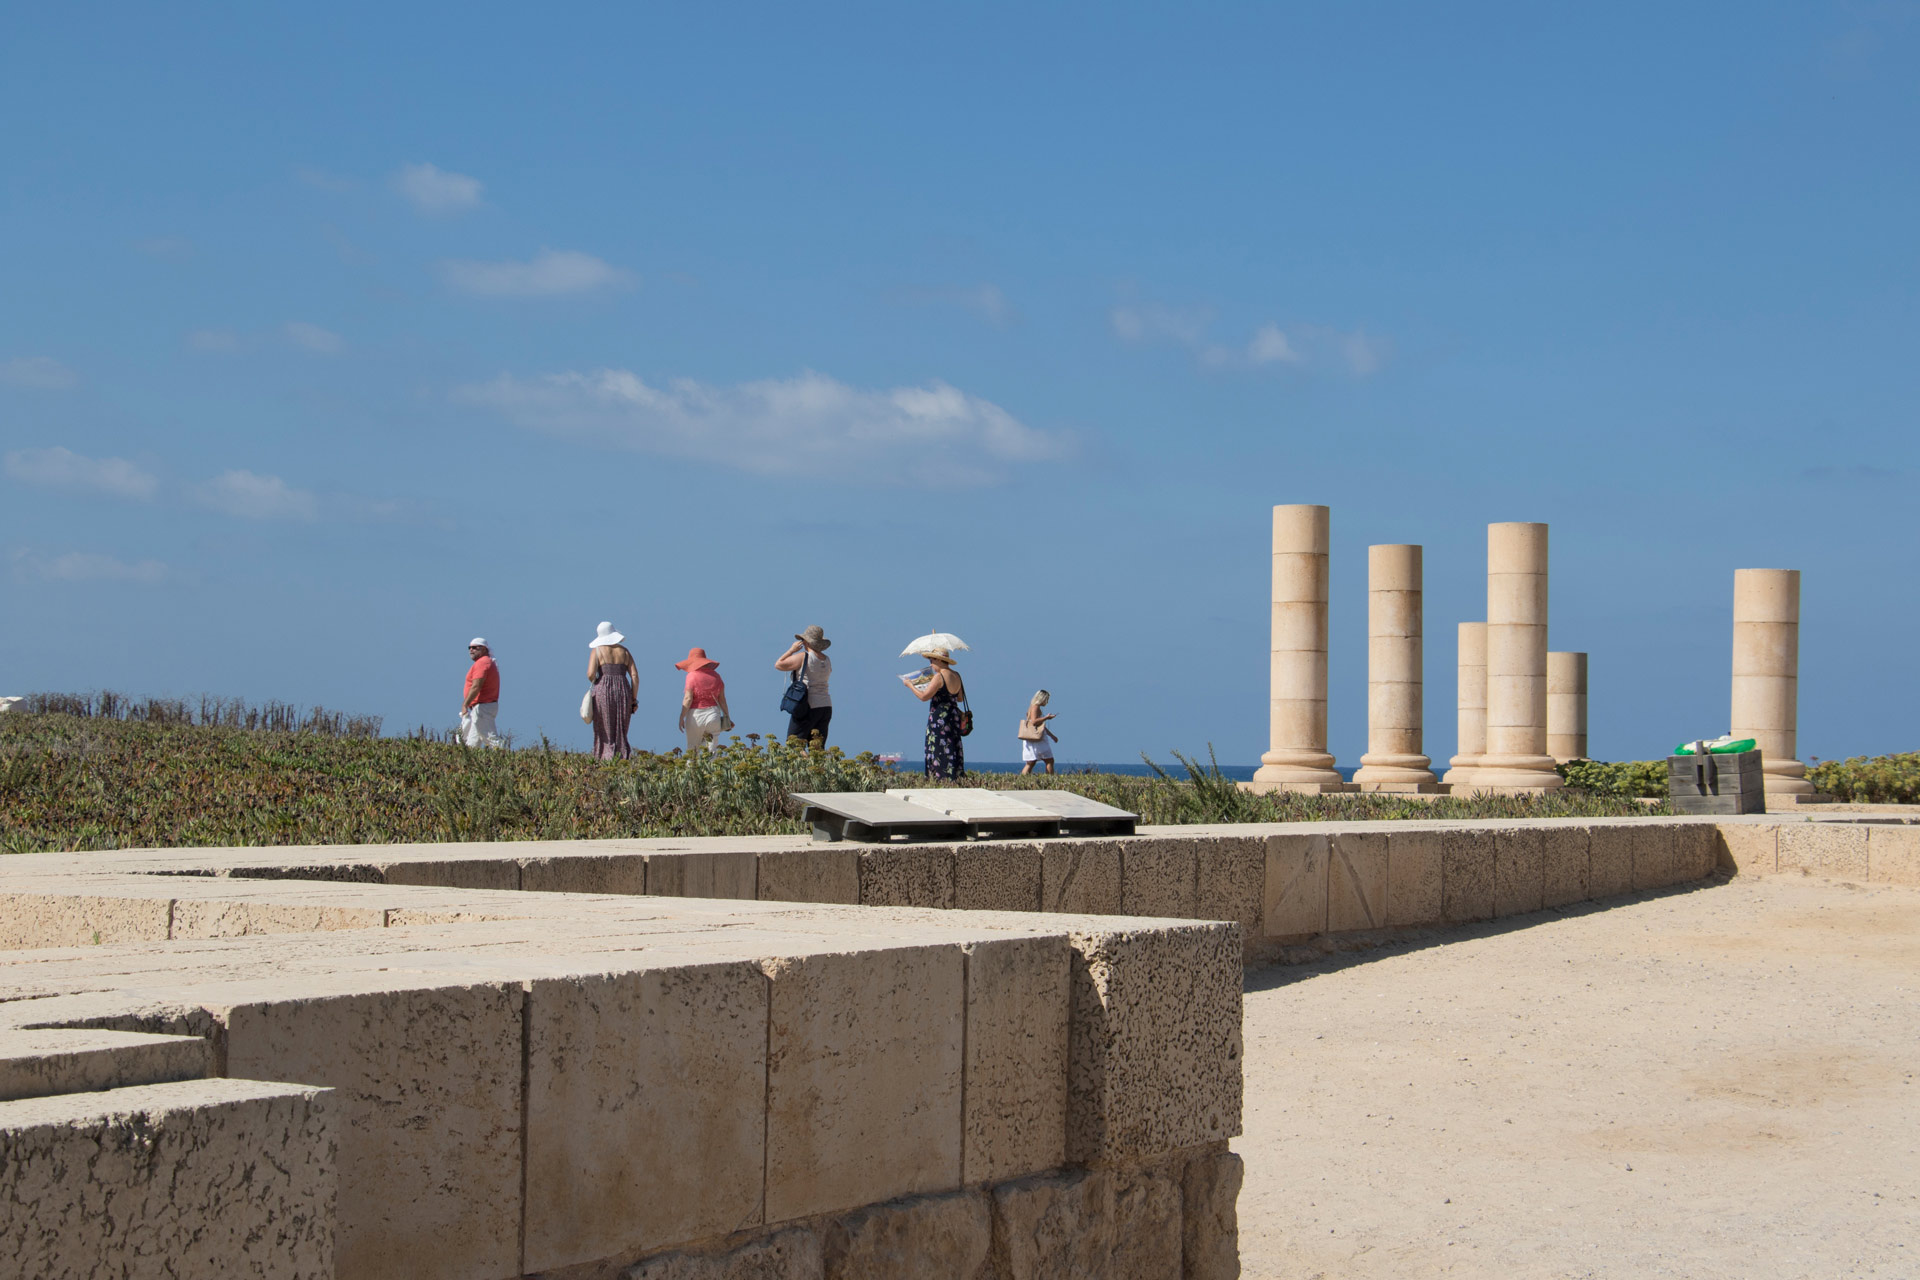 Peristyle Courtyard of the Promontory Palace, Caesarea, Israel